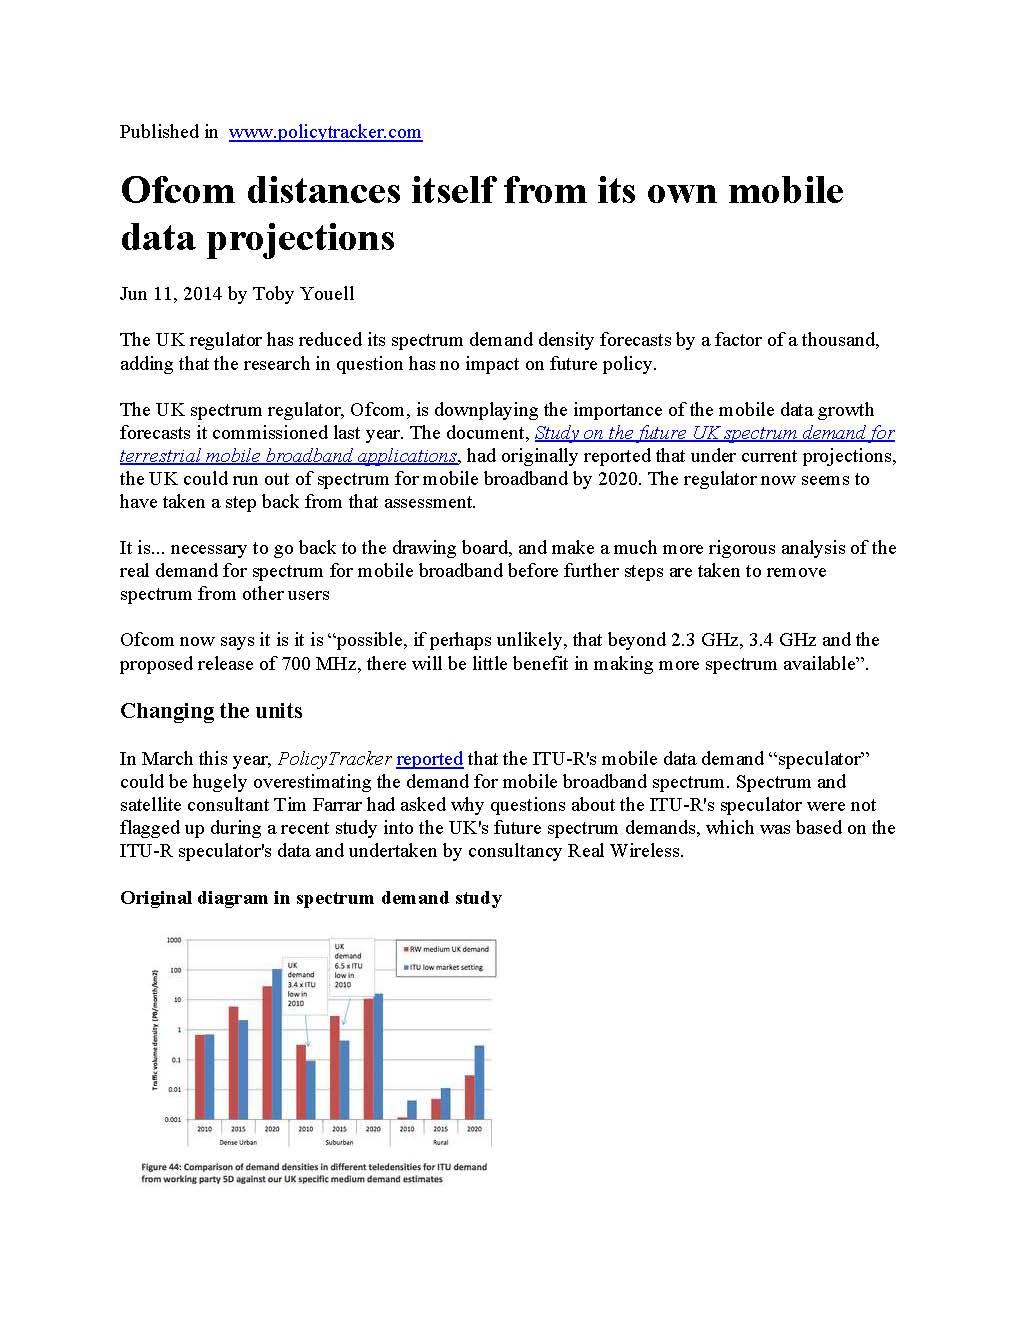 Pages from Ofcom Distances Itself from its Own Mobile Data Projections